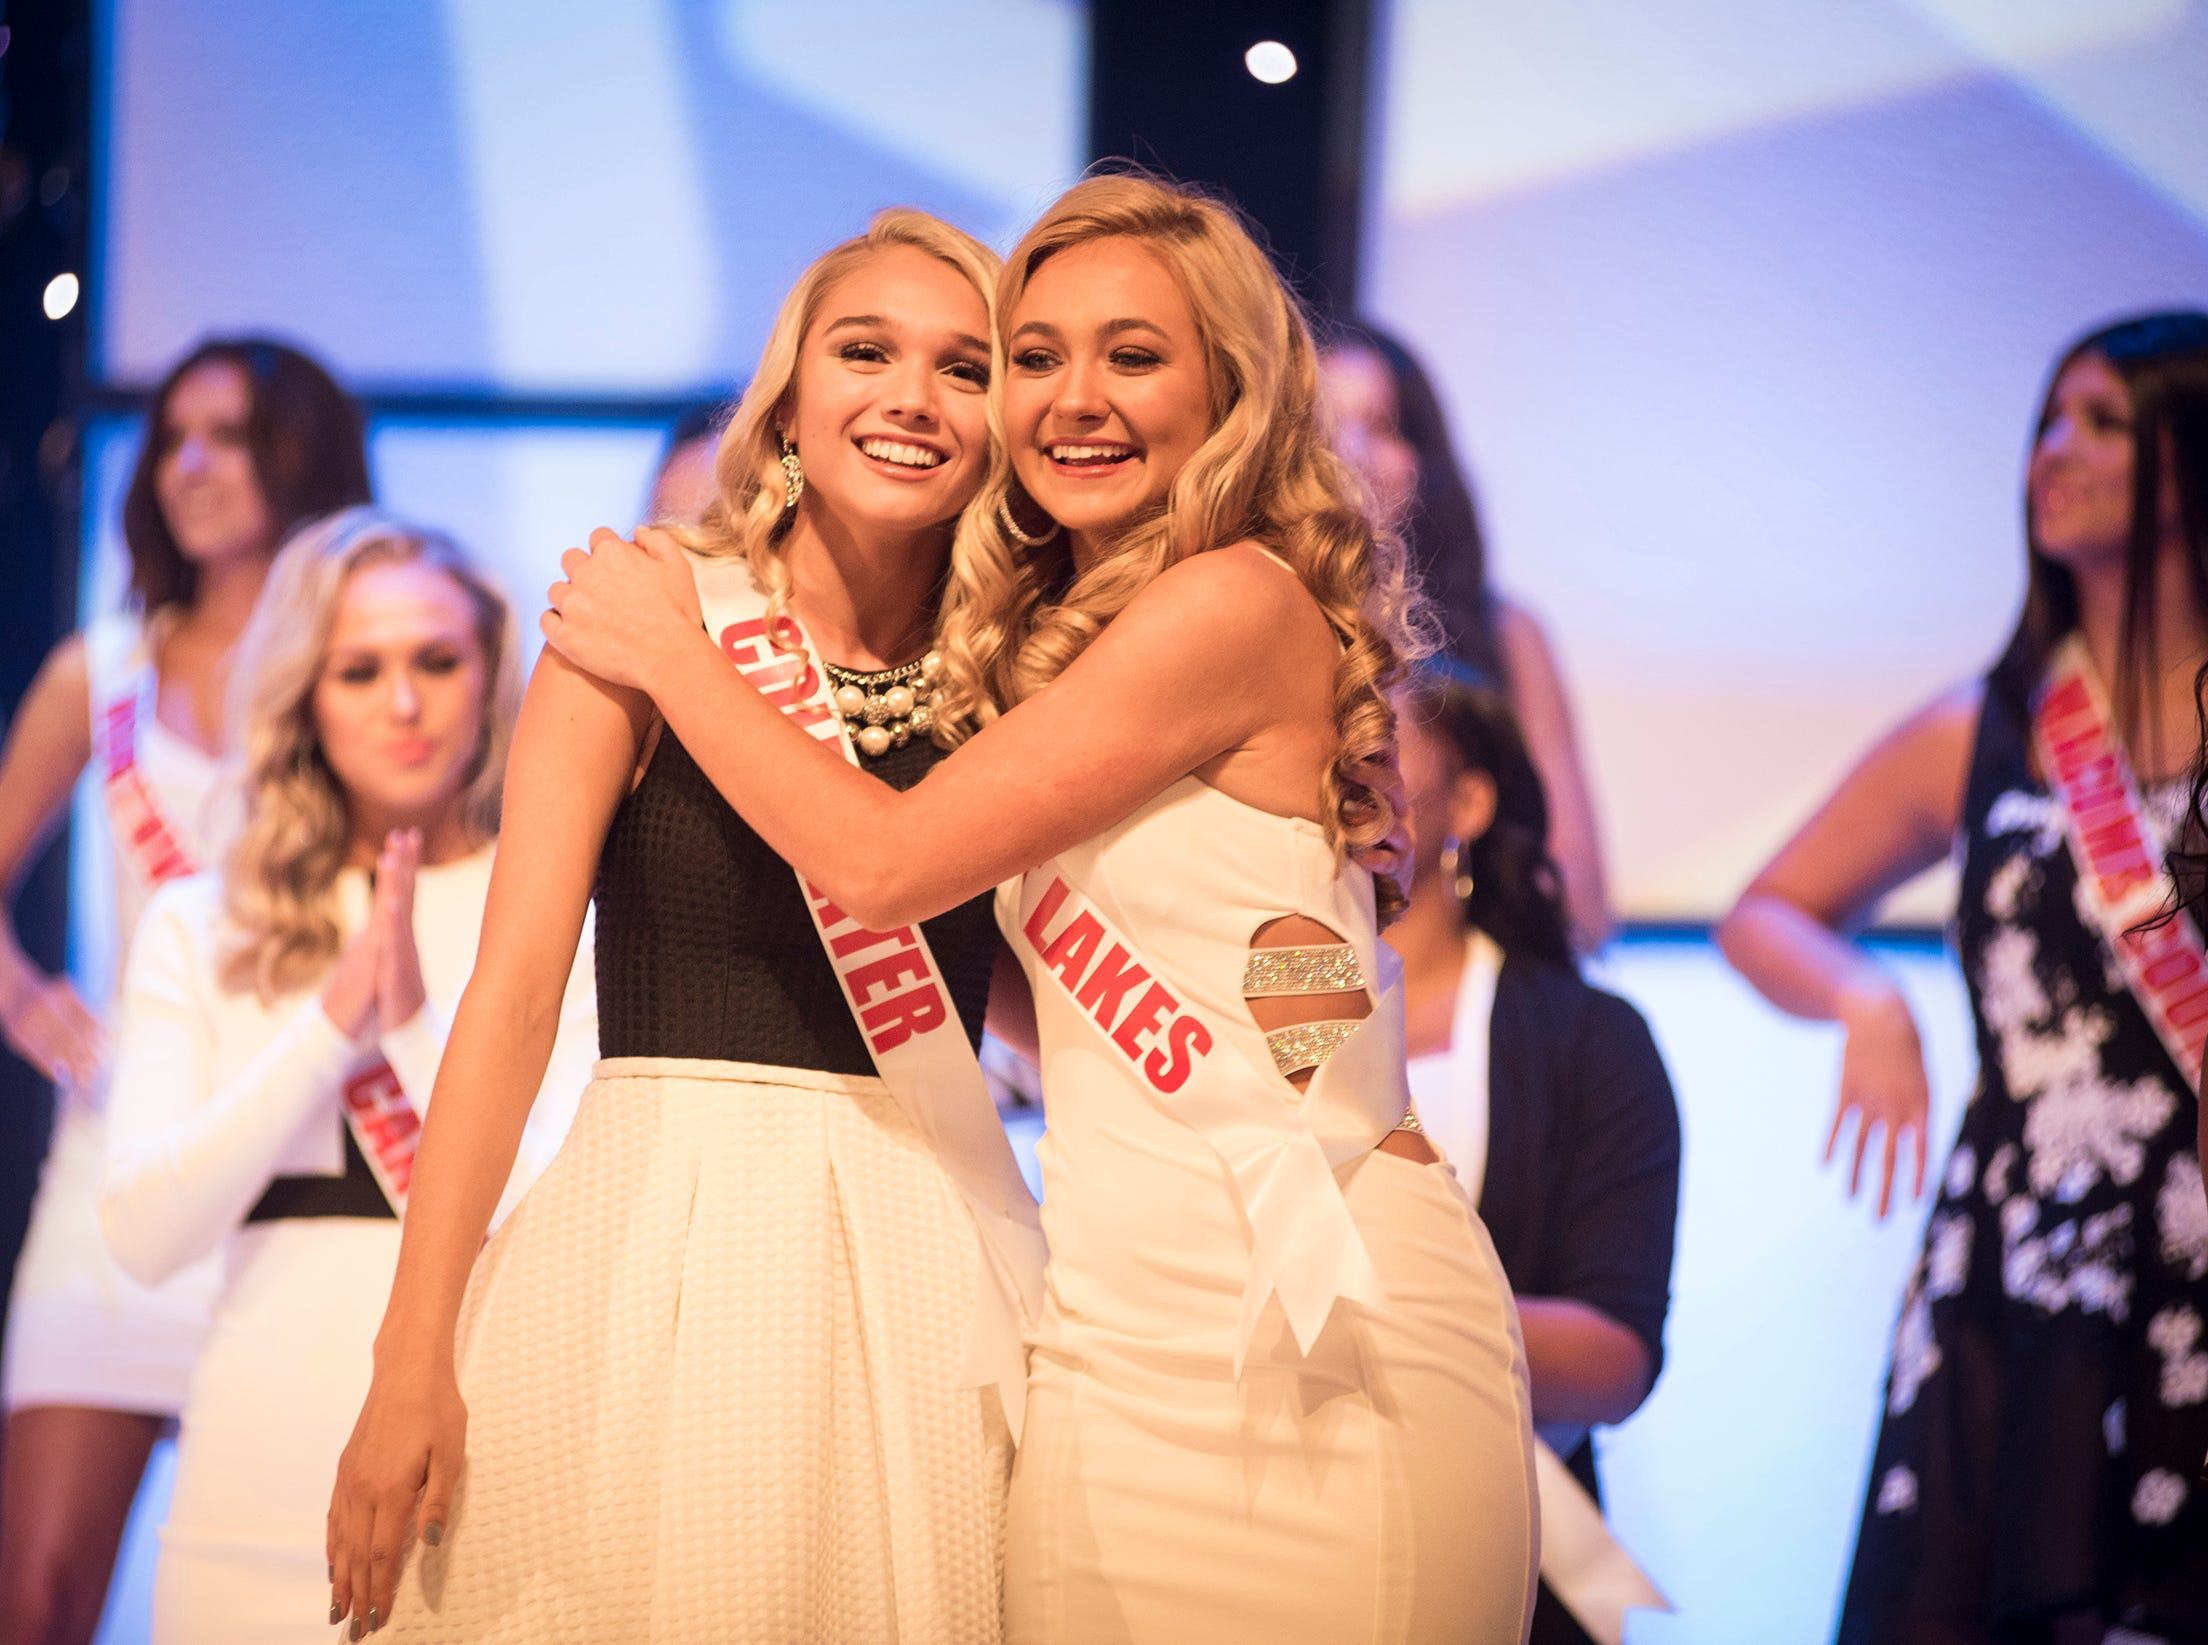 Miss Great Lakes Teen Rebecca Larsen, right, hugs Miss Coldwater Teen Erica Rodgers after being selected for the semifinal round of the Miss Michigan Teen USA pageant Saturday, Sept. 22, 2018 at McMorran Theater.